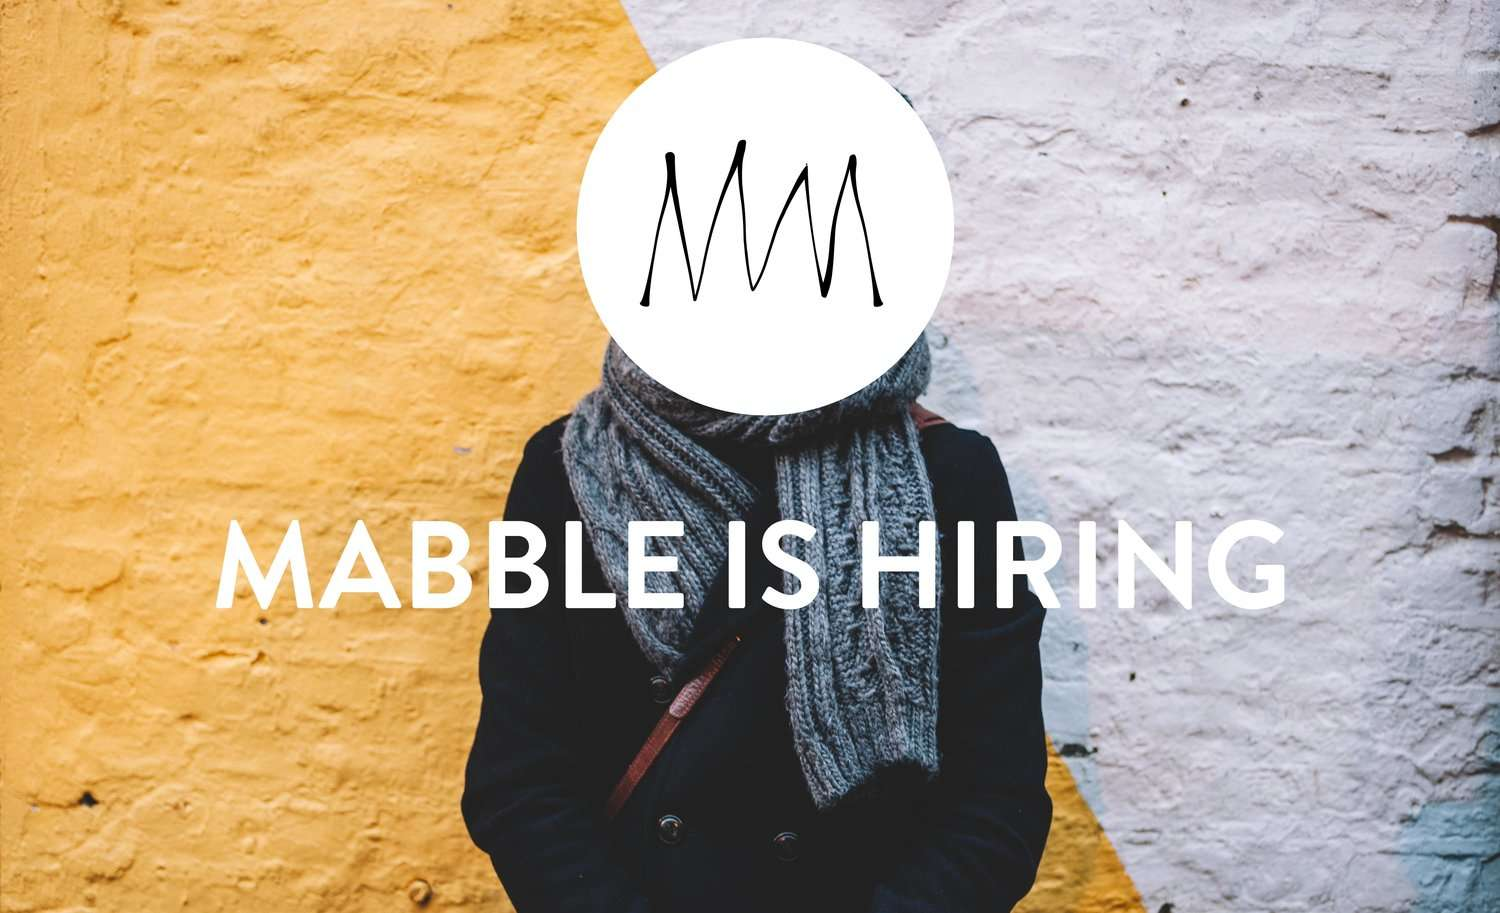 Mabble Media - Creative Agency | Mabble is Hiring